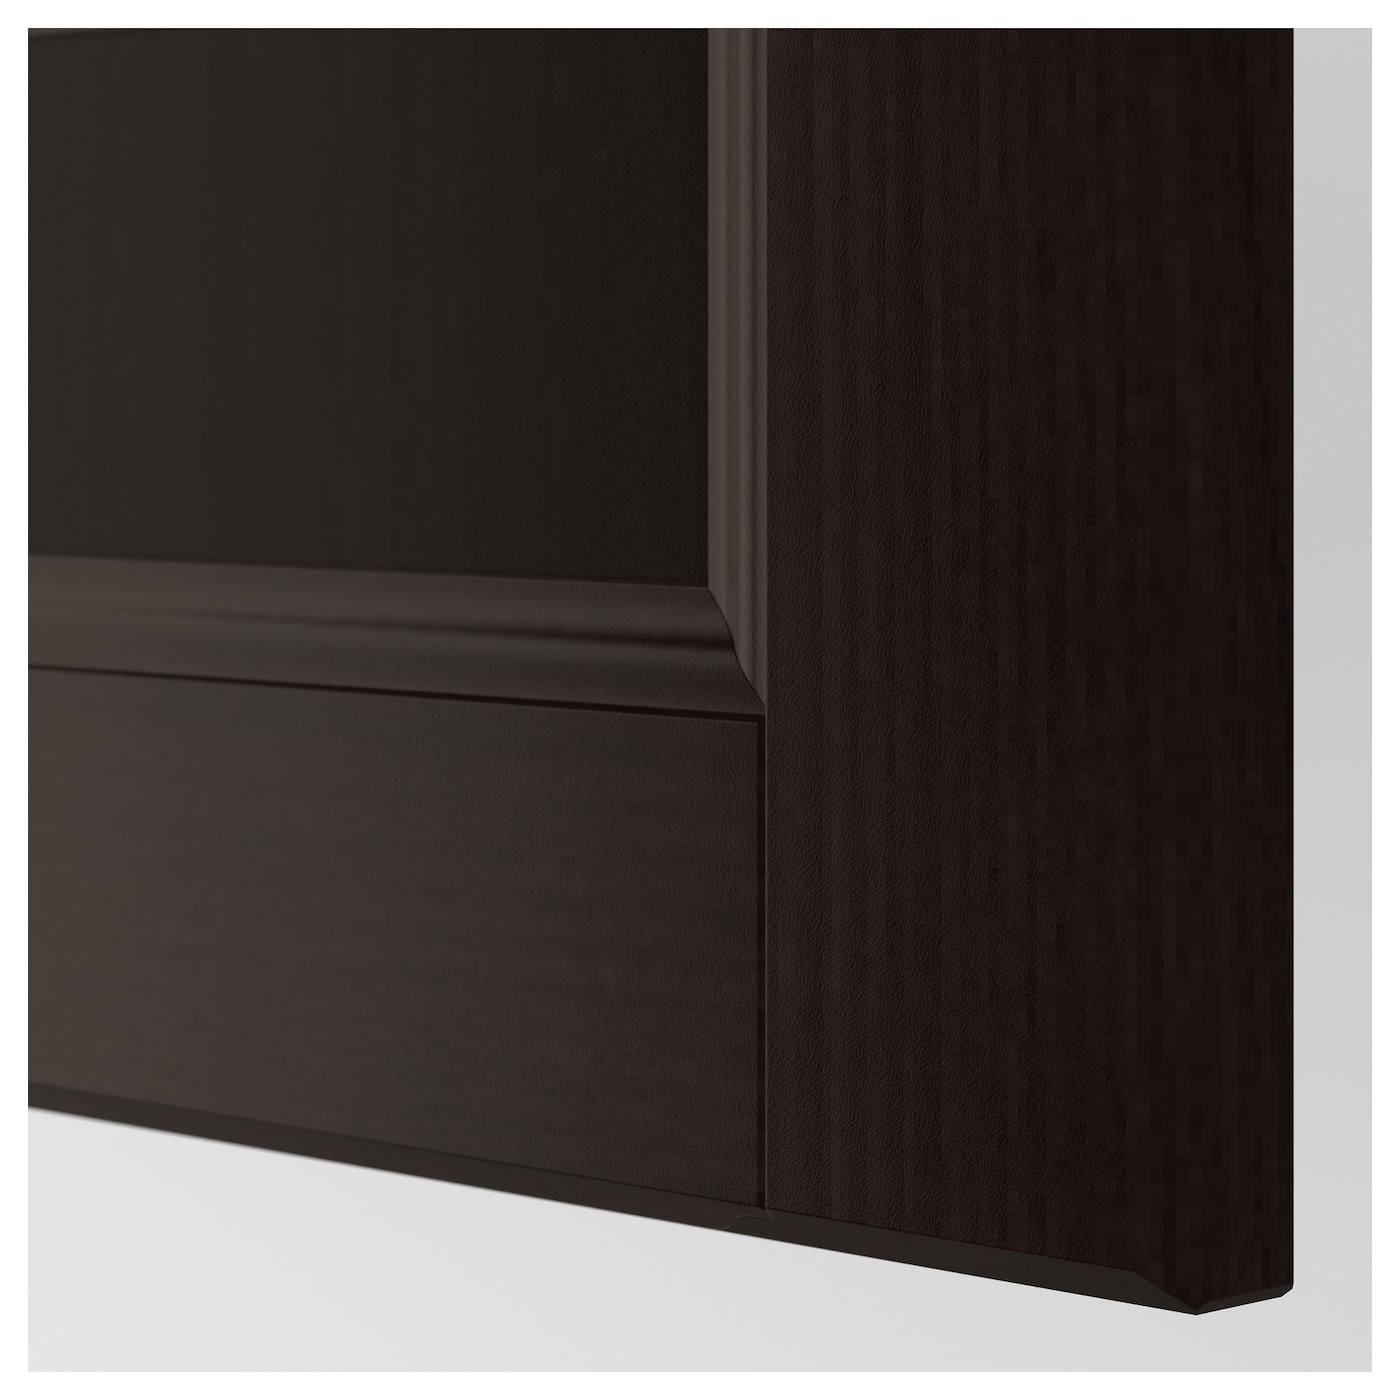 Ikea Kitchen Laxarby: LAXARBY Drawer Front Black-brown 80x40 Cm